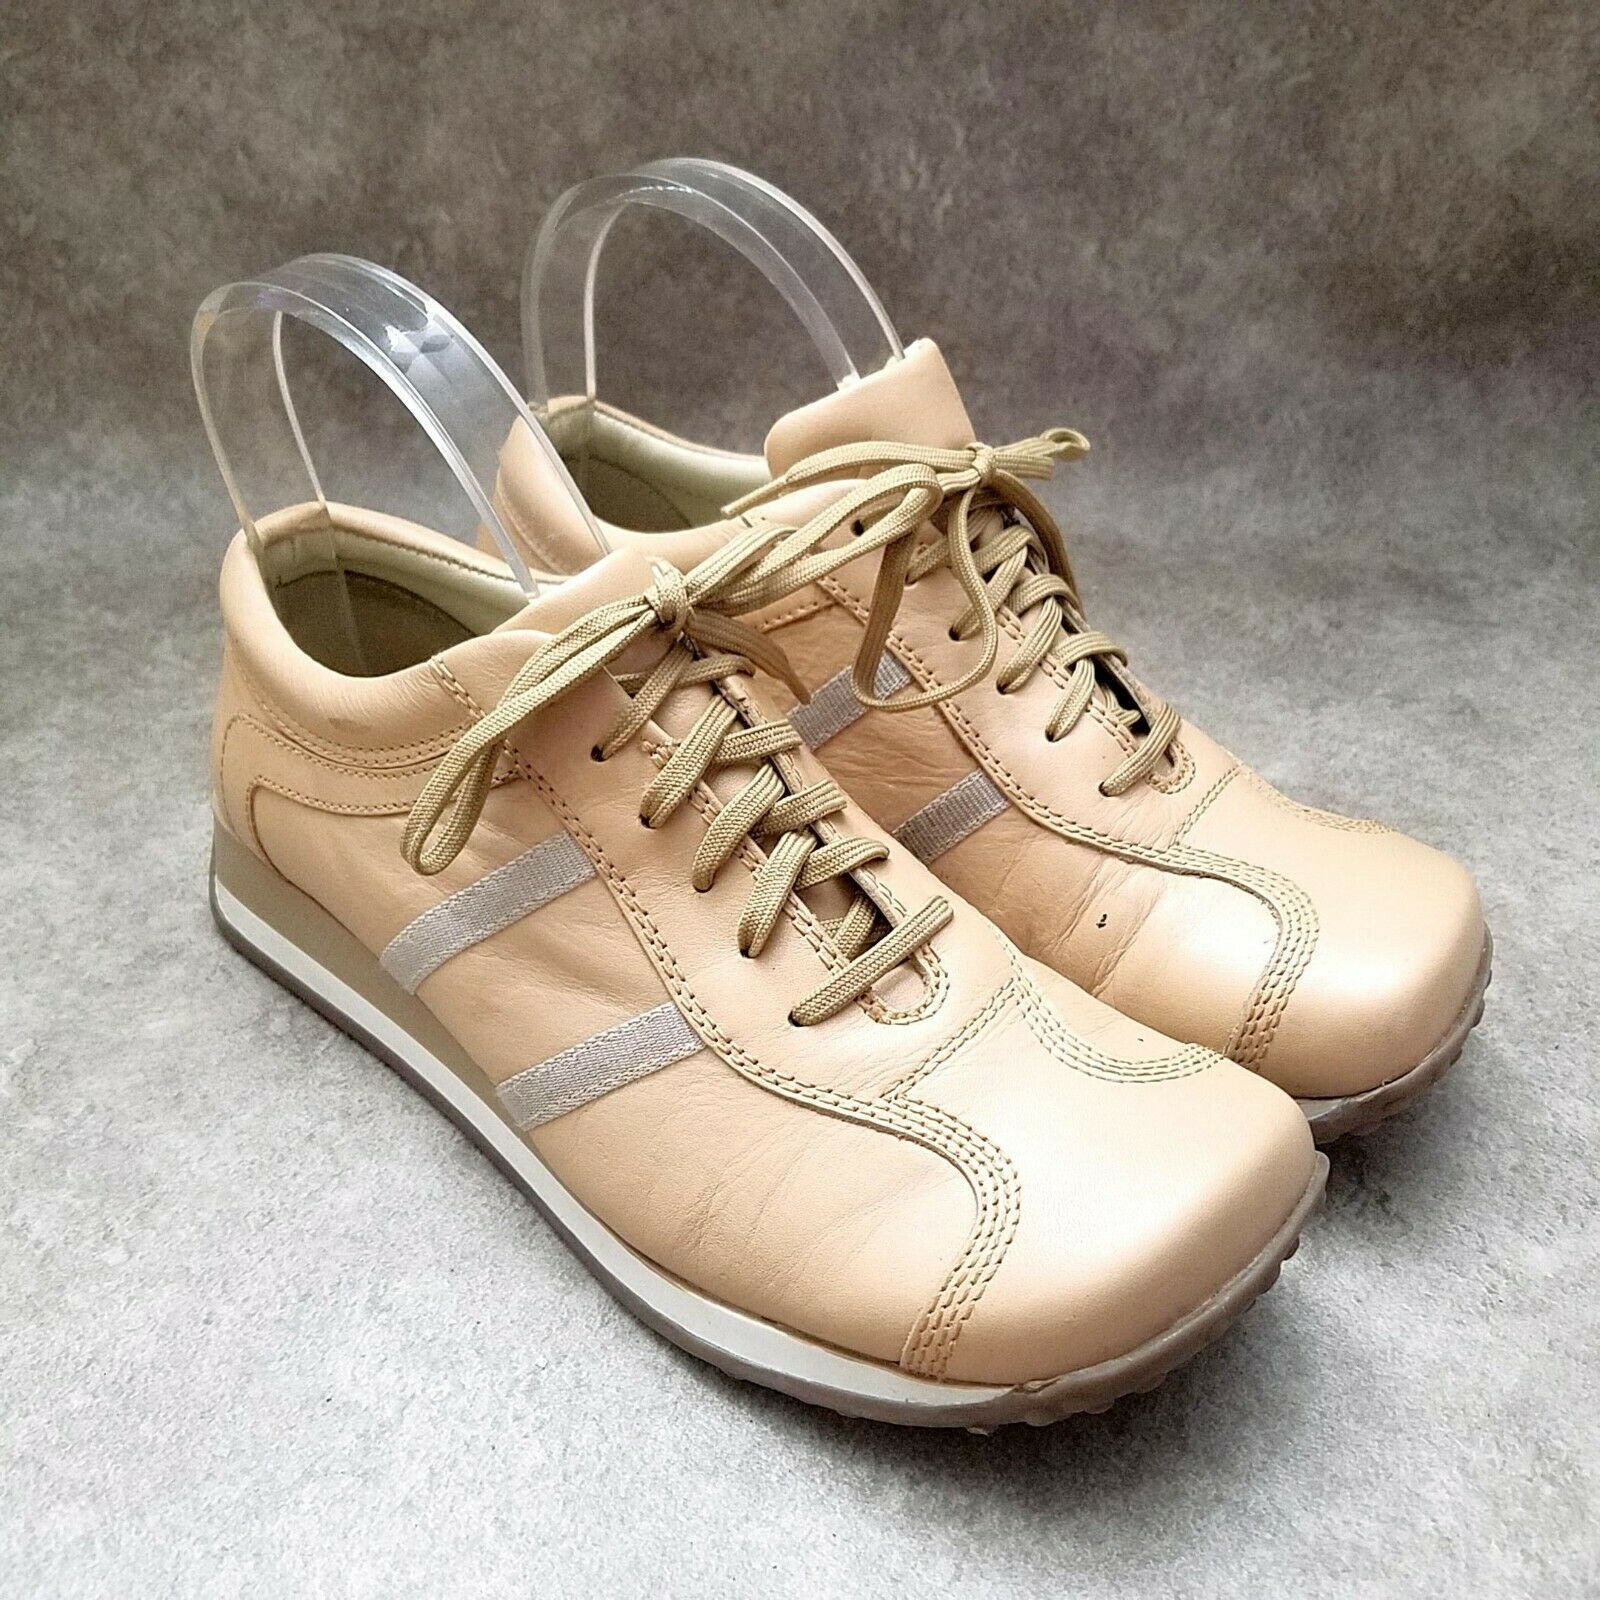 Steve Madden Womens Bubbbles Size 8 Tan Lace Up Low Wedge Driving Sneakers